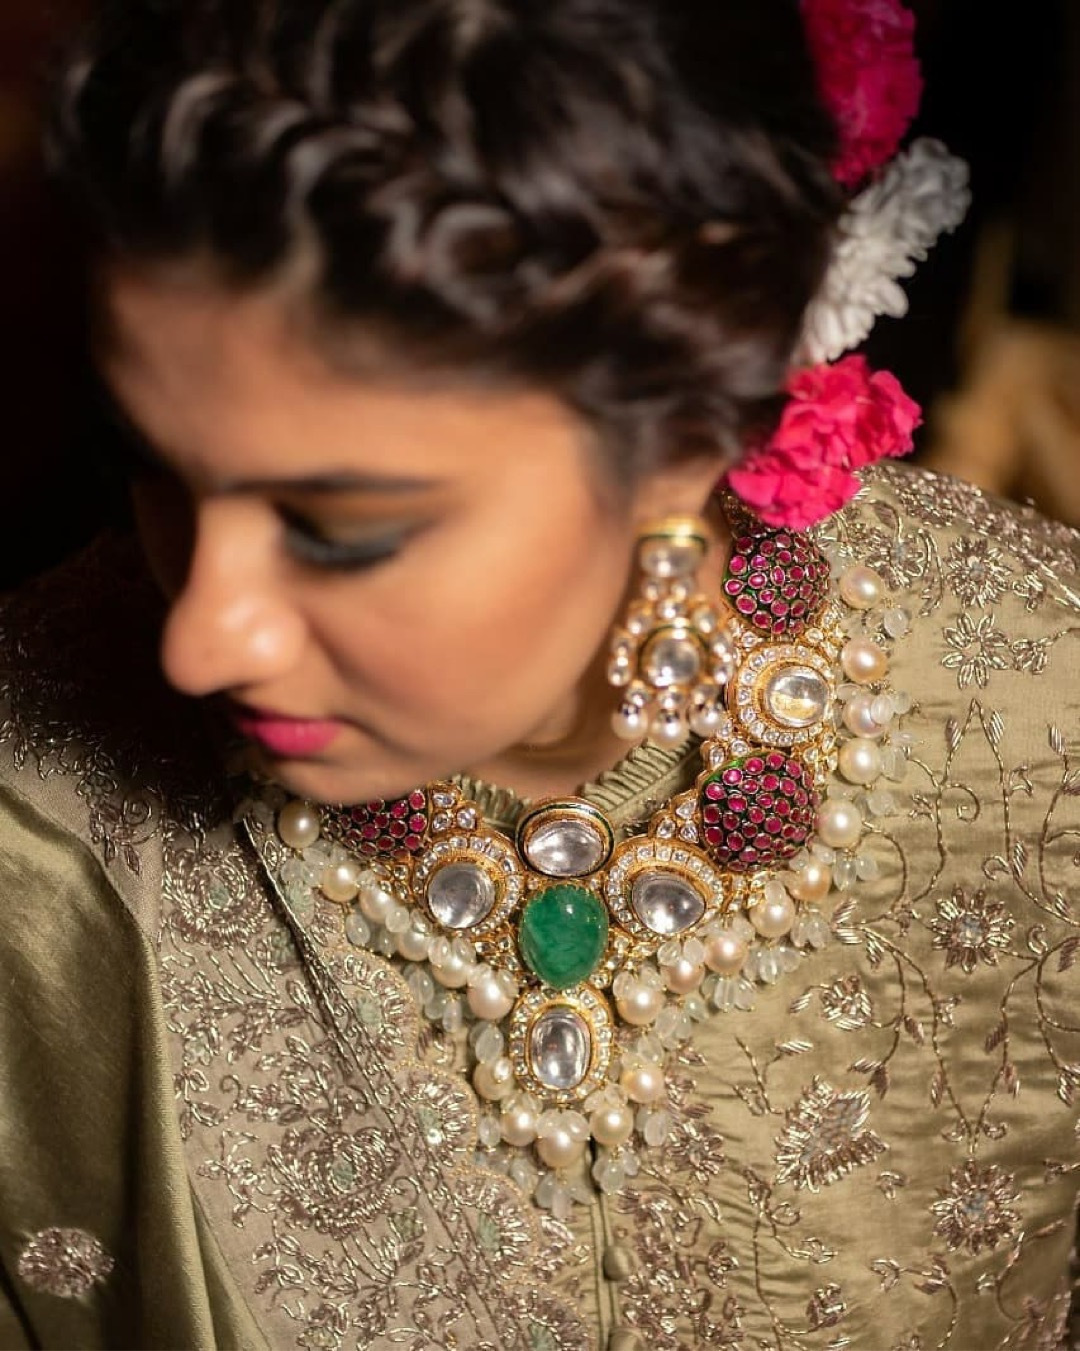 indian bride | polki dimond | bridal makeup for Indian brides | bridal outfit | designer brides | indian celeb wedding | #celebrity #indianceleb #celebwedding #polkidiamond #polkinecklace #anammirzawedding | anam mirza wedding |wittyvows #bridesofwittyvows